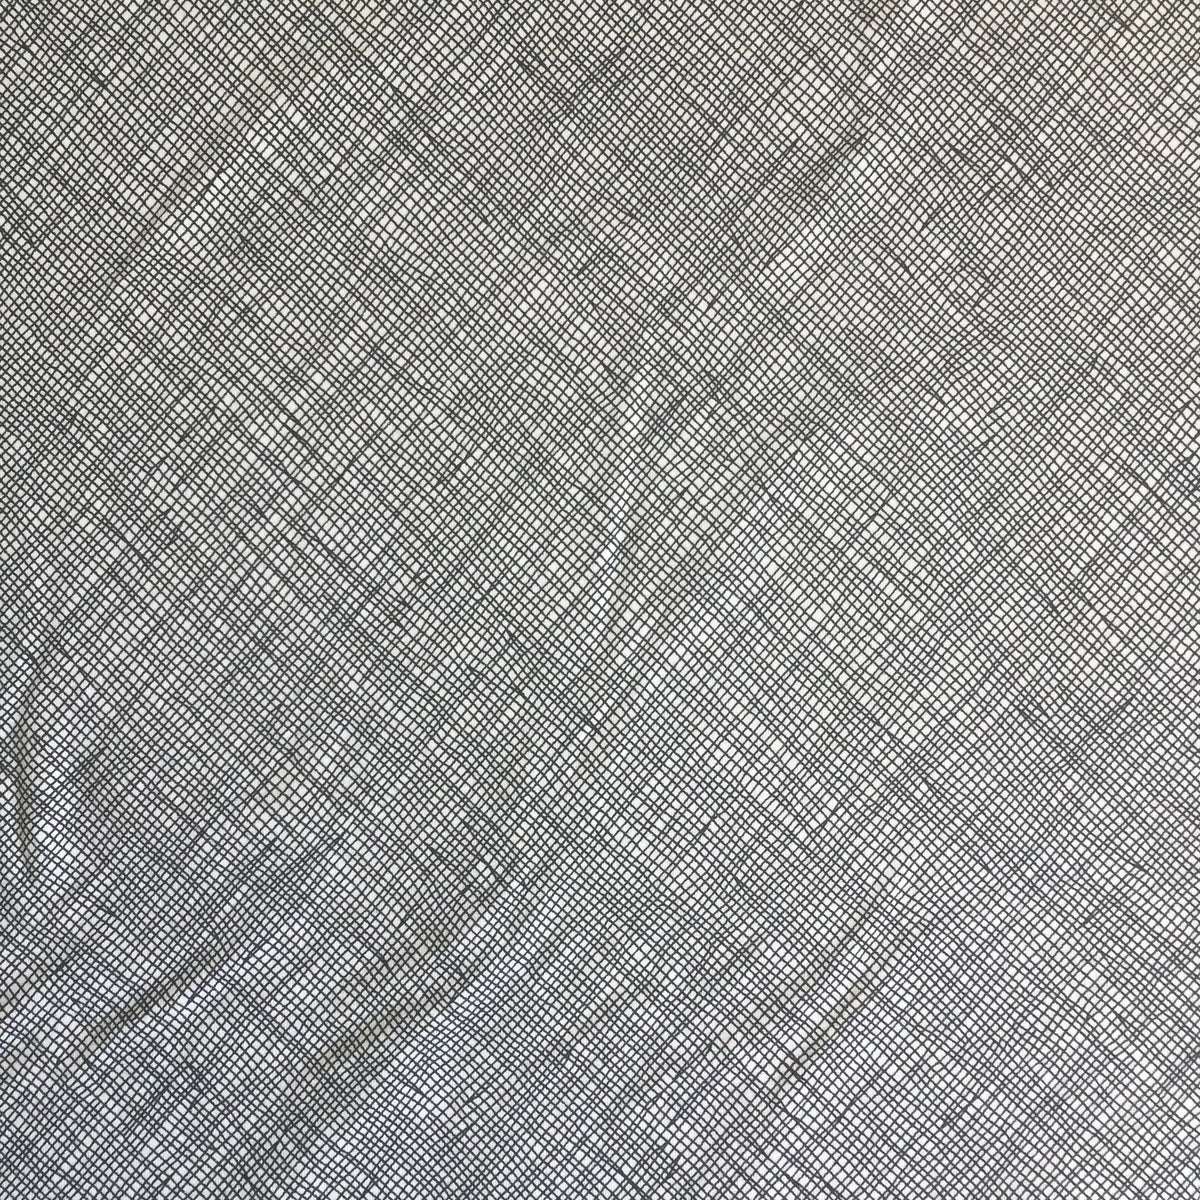 Black Crosshatch Cotton/Spandex Jersey Fabric by the Yard